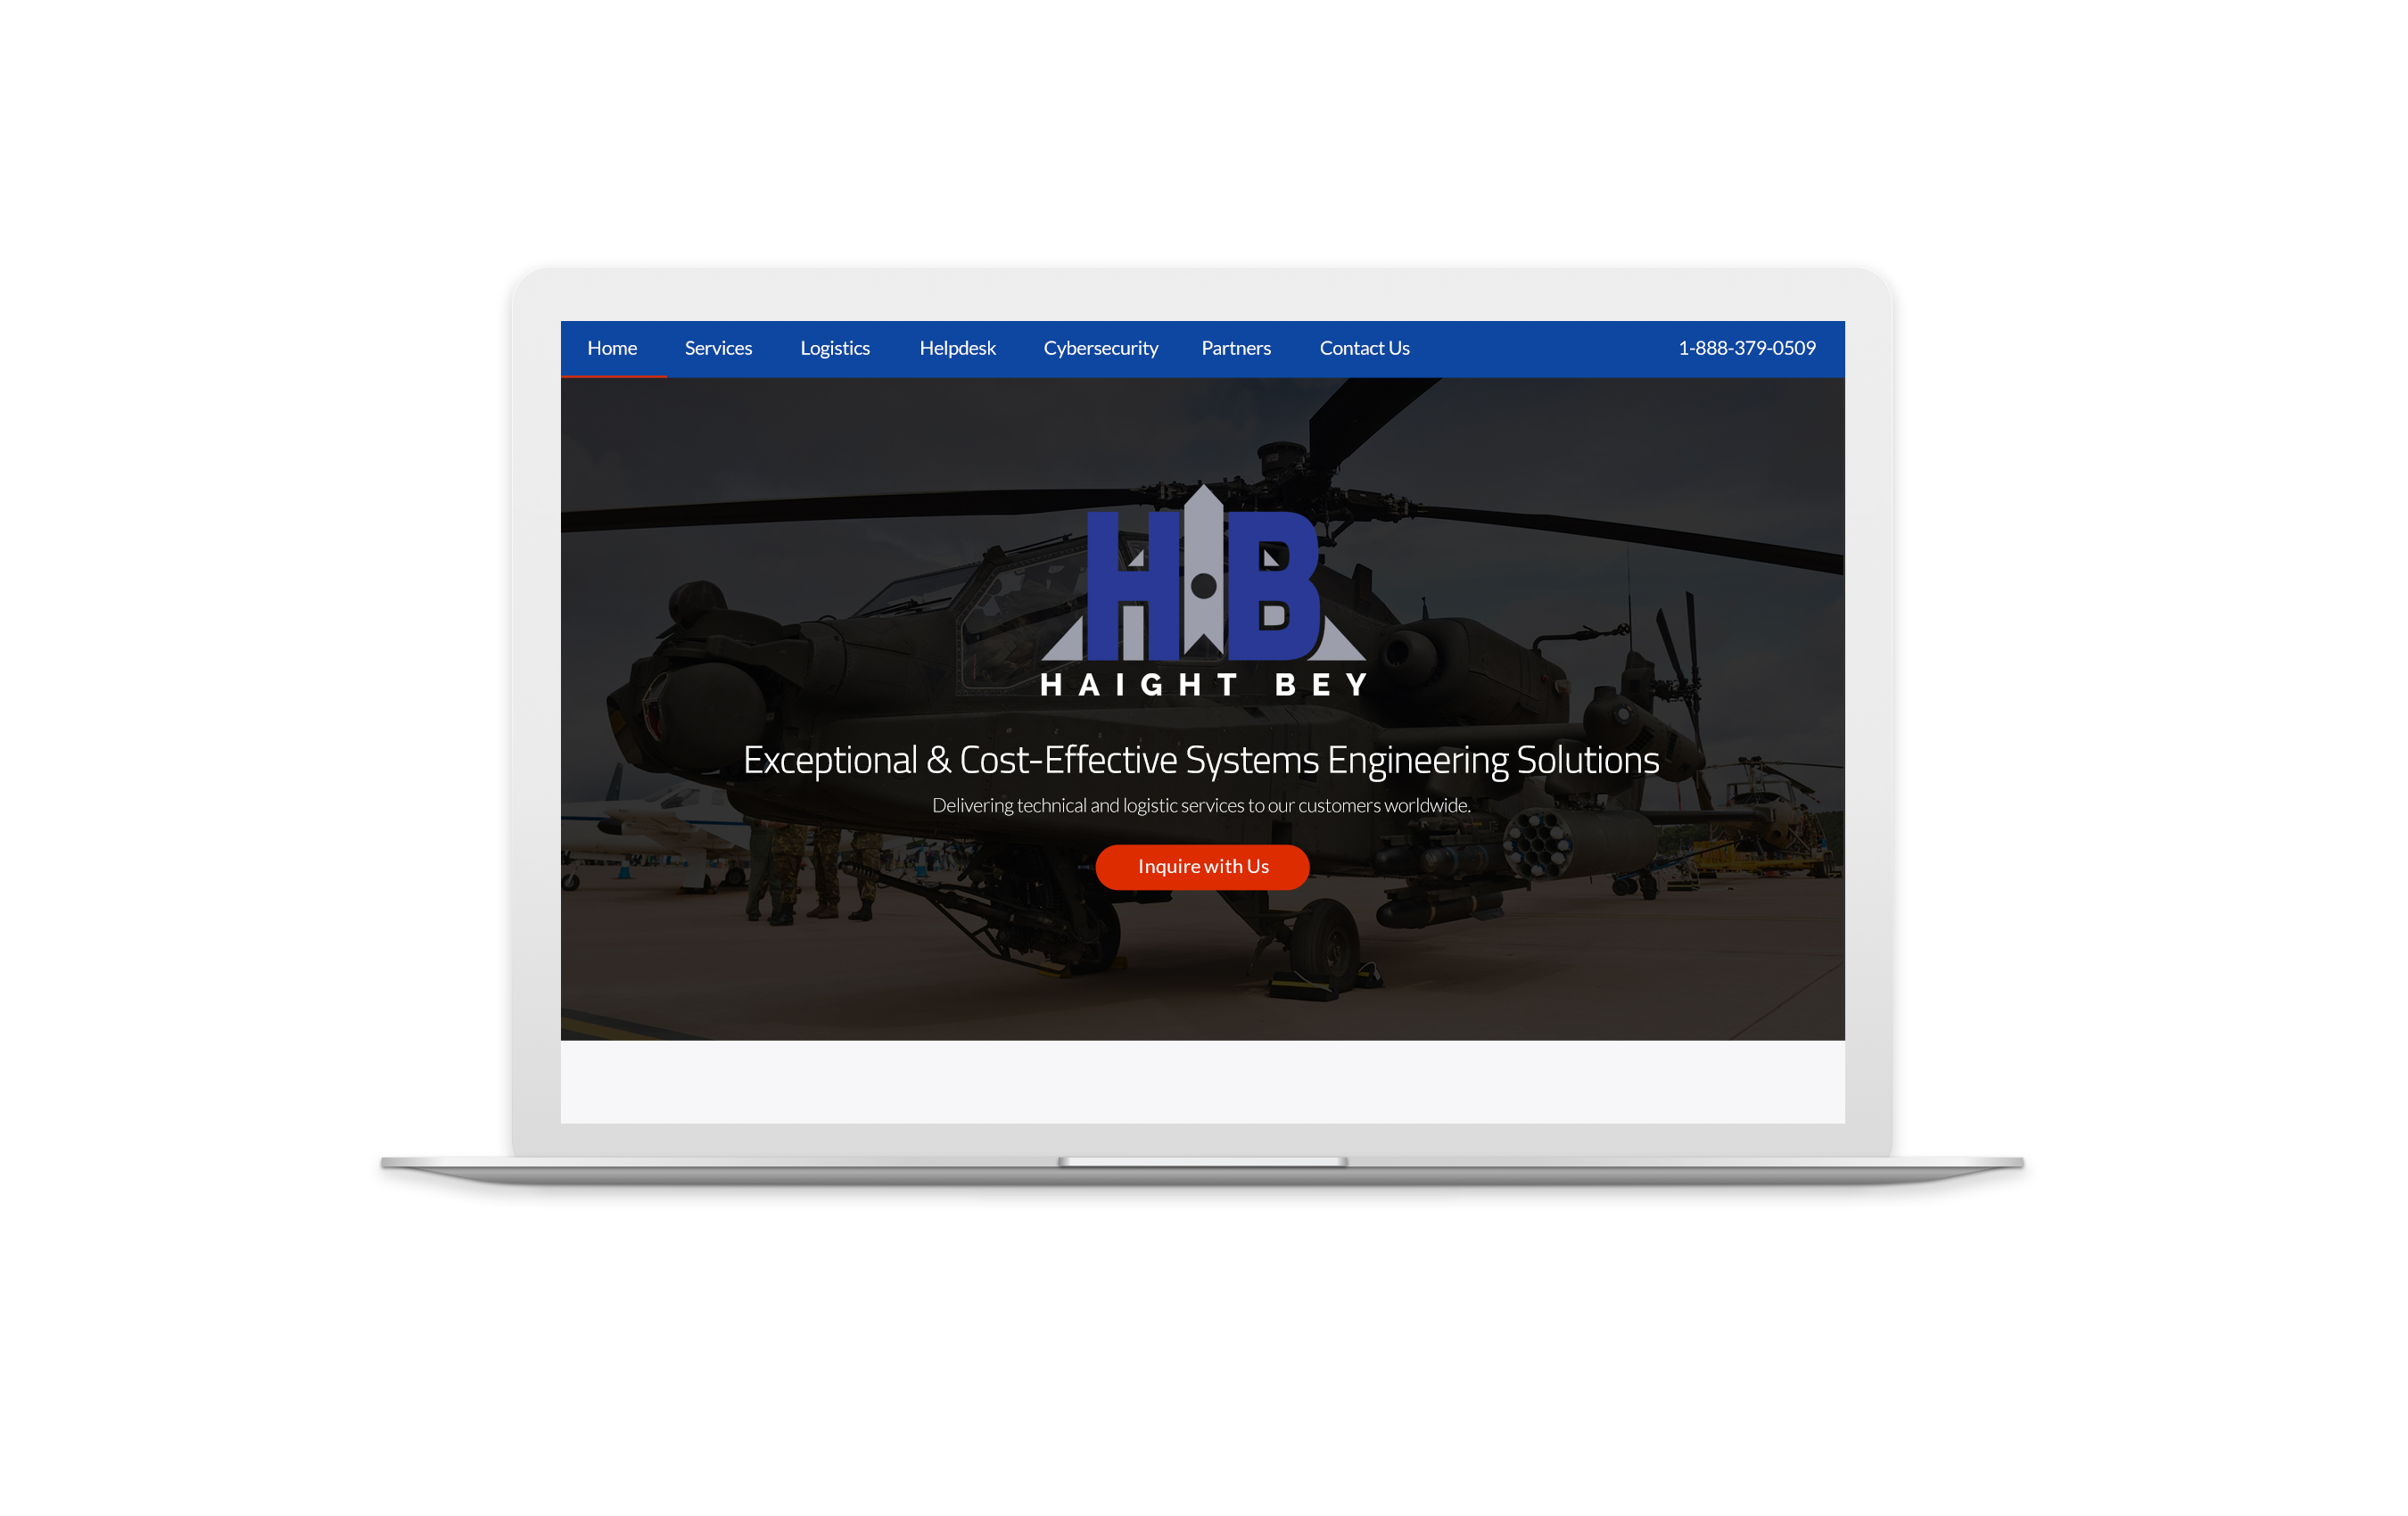 haightbey.com home page